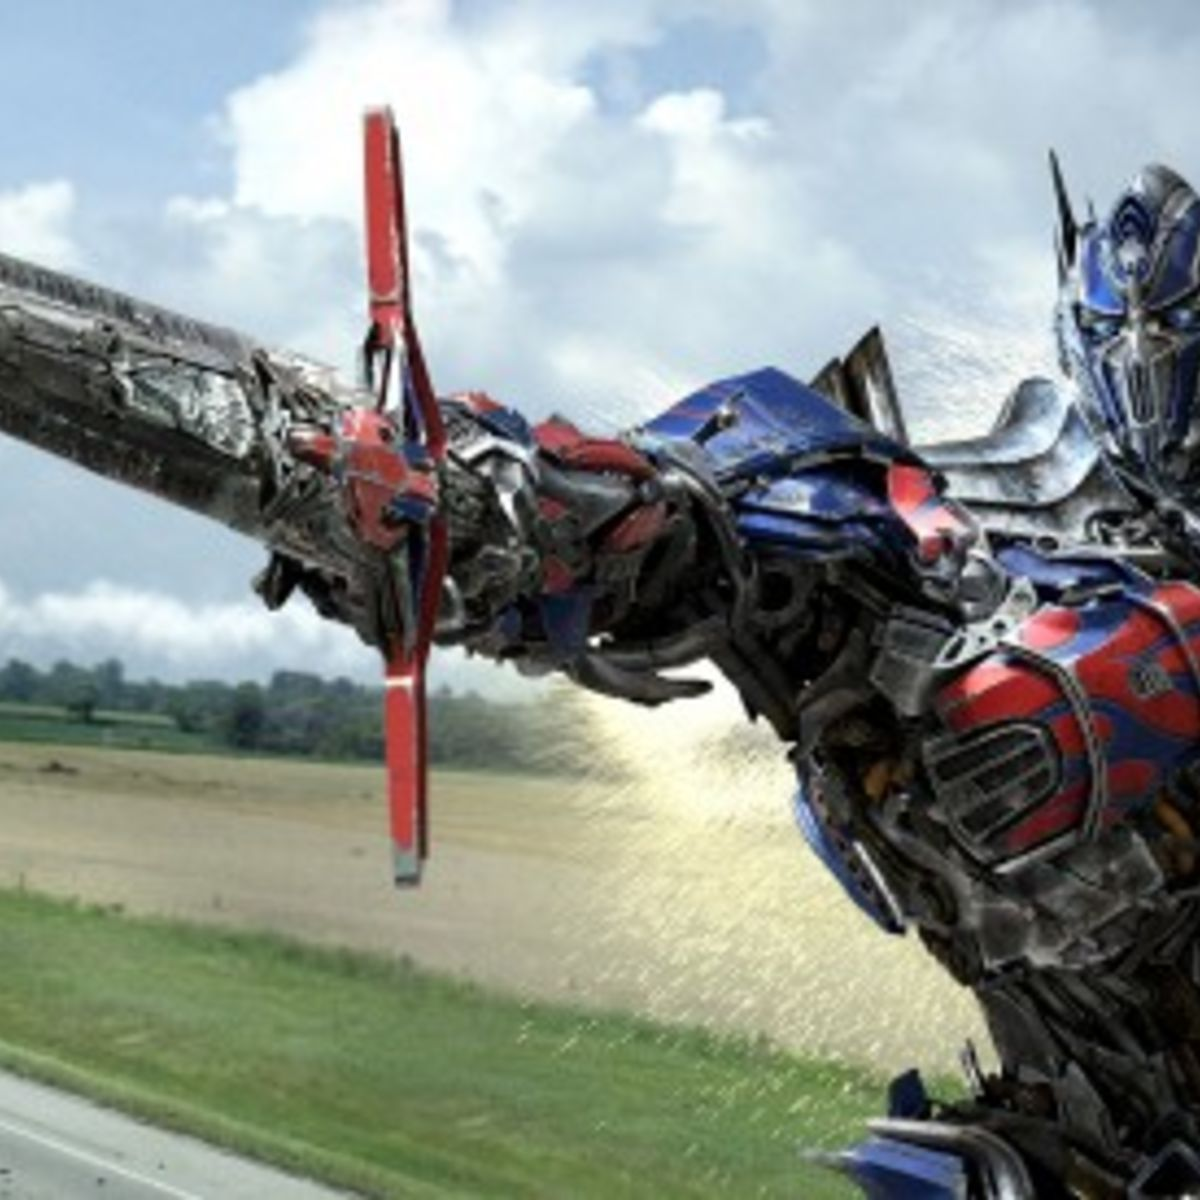 Transformers-4-Optimus-Prime-sword-550x275.jpg